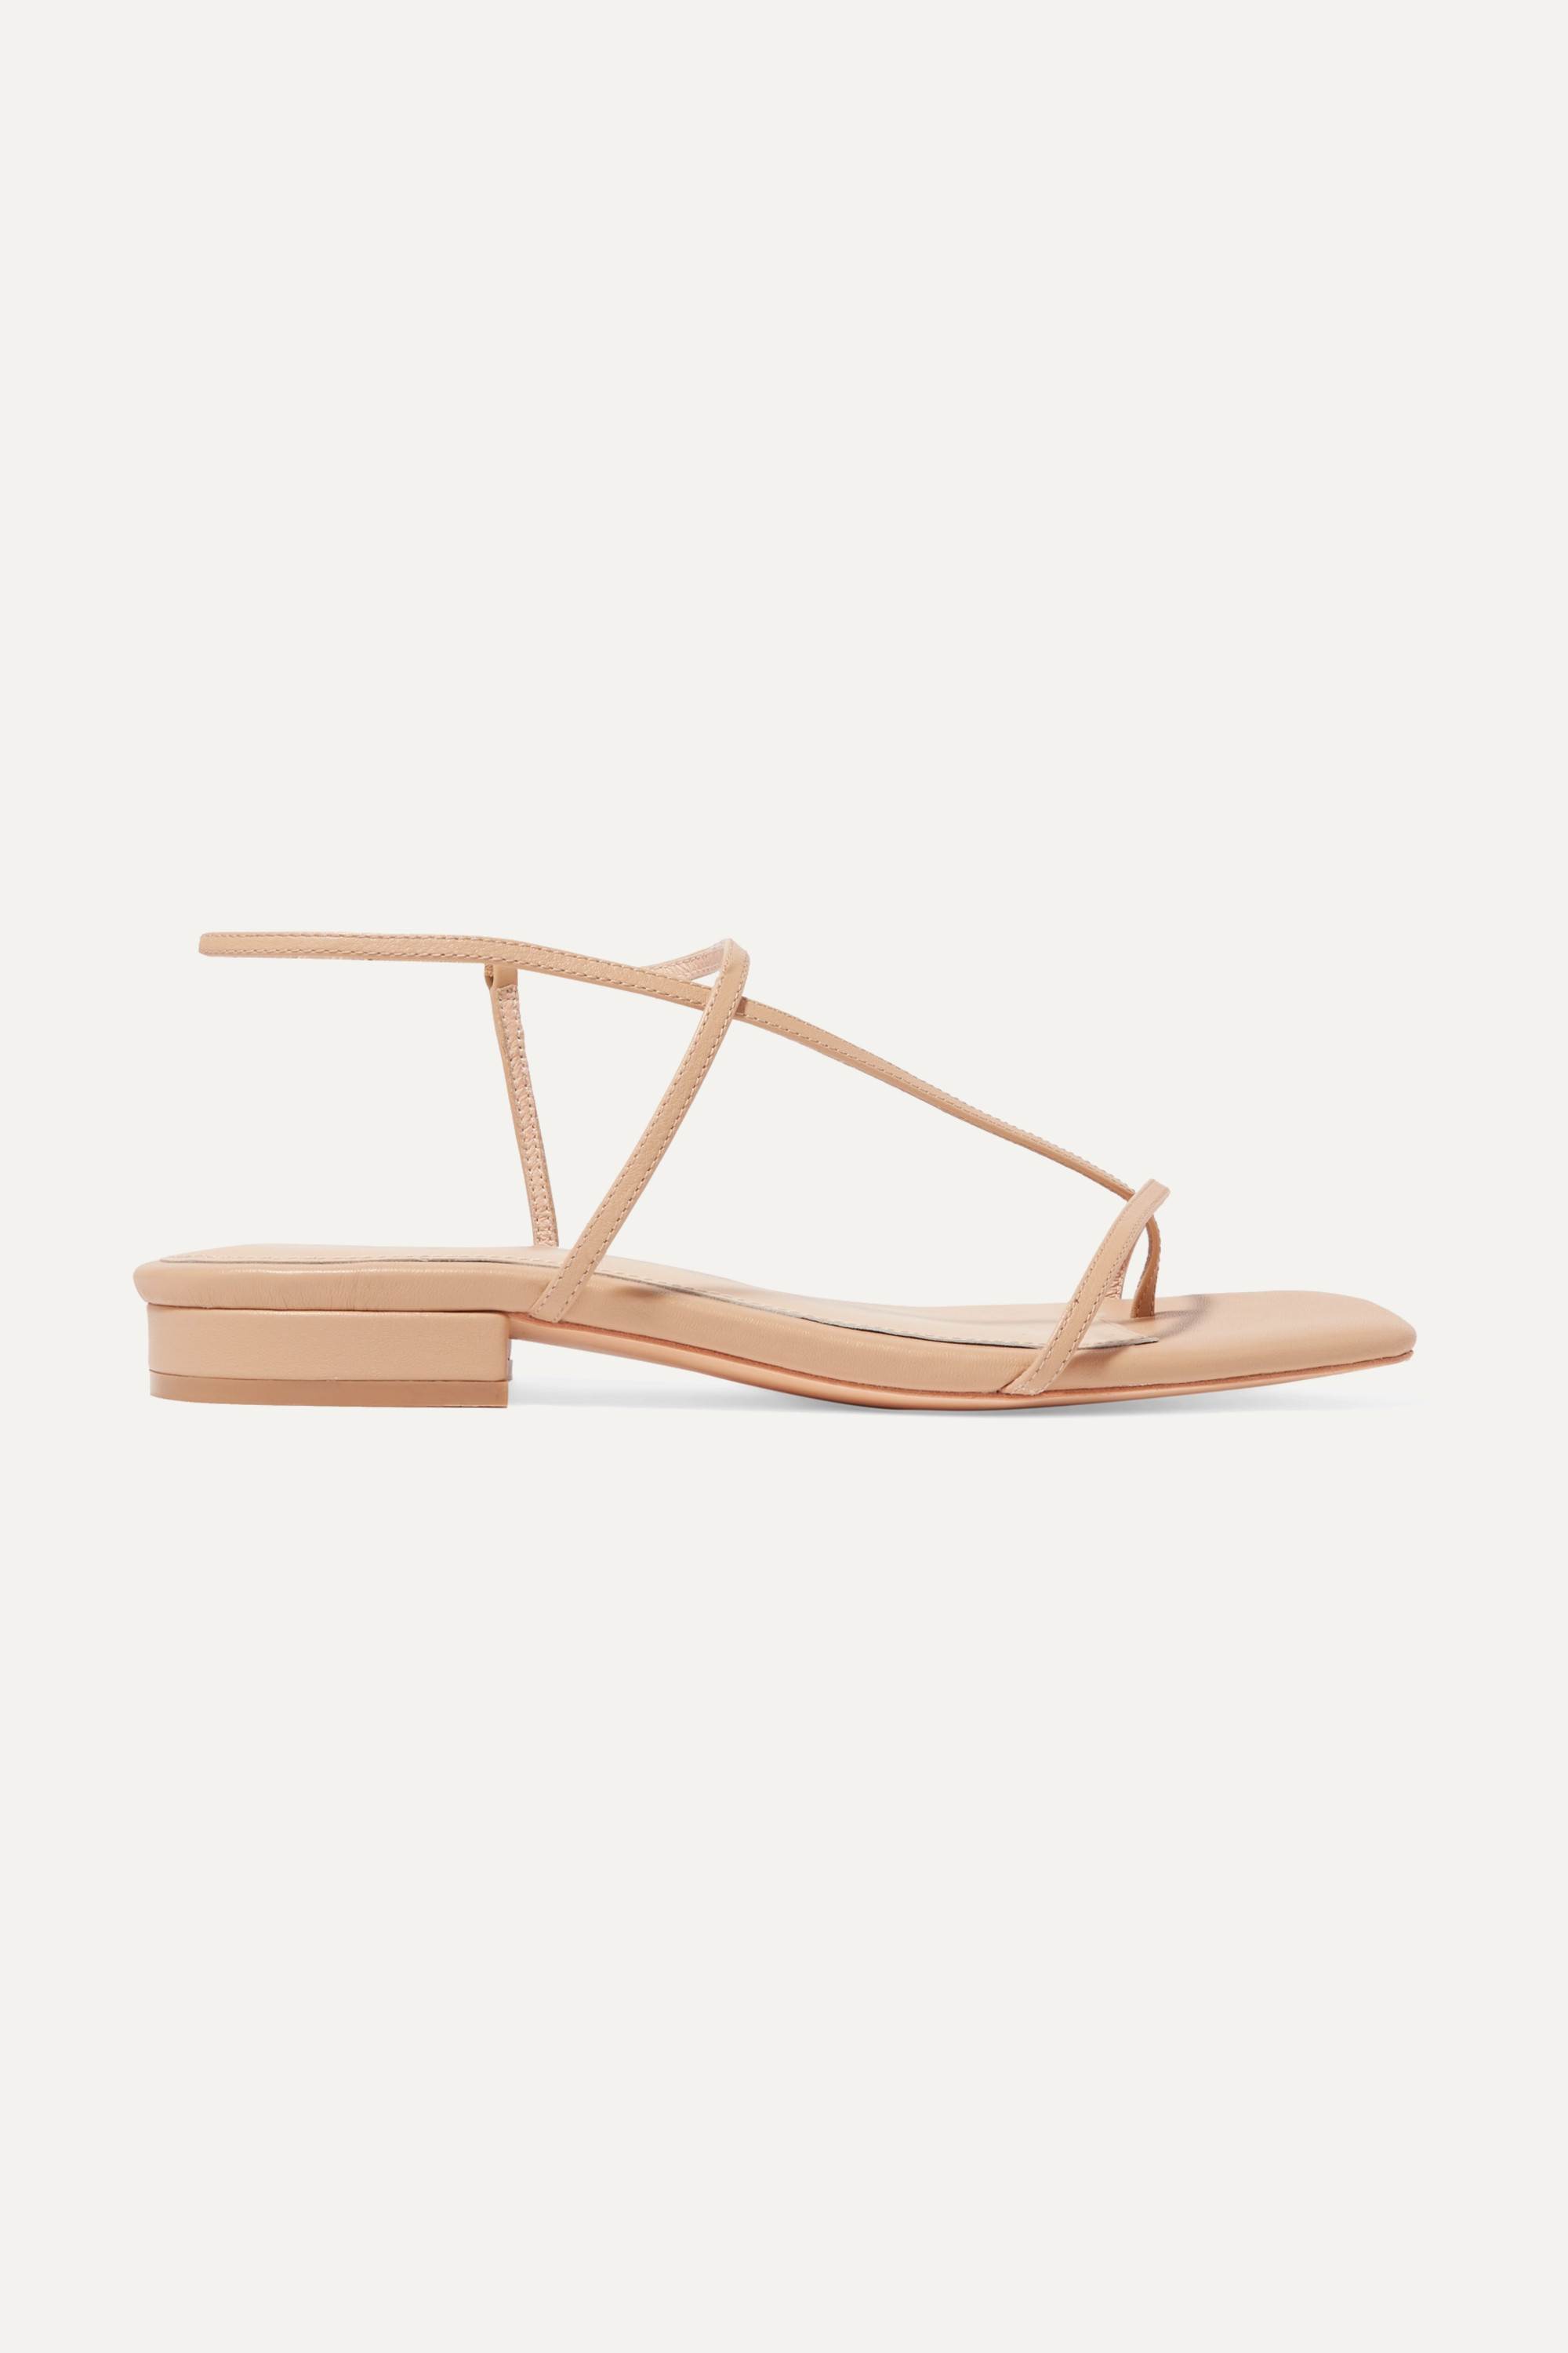 STUDIO AMELIA 1.2 leather sandals